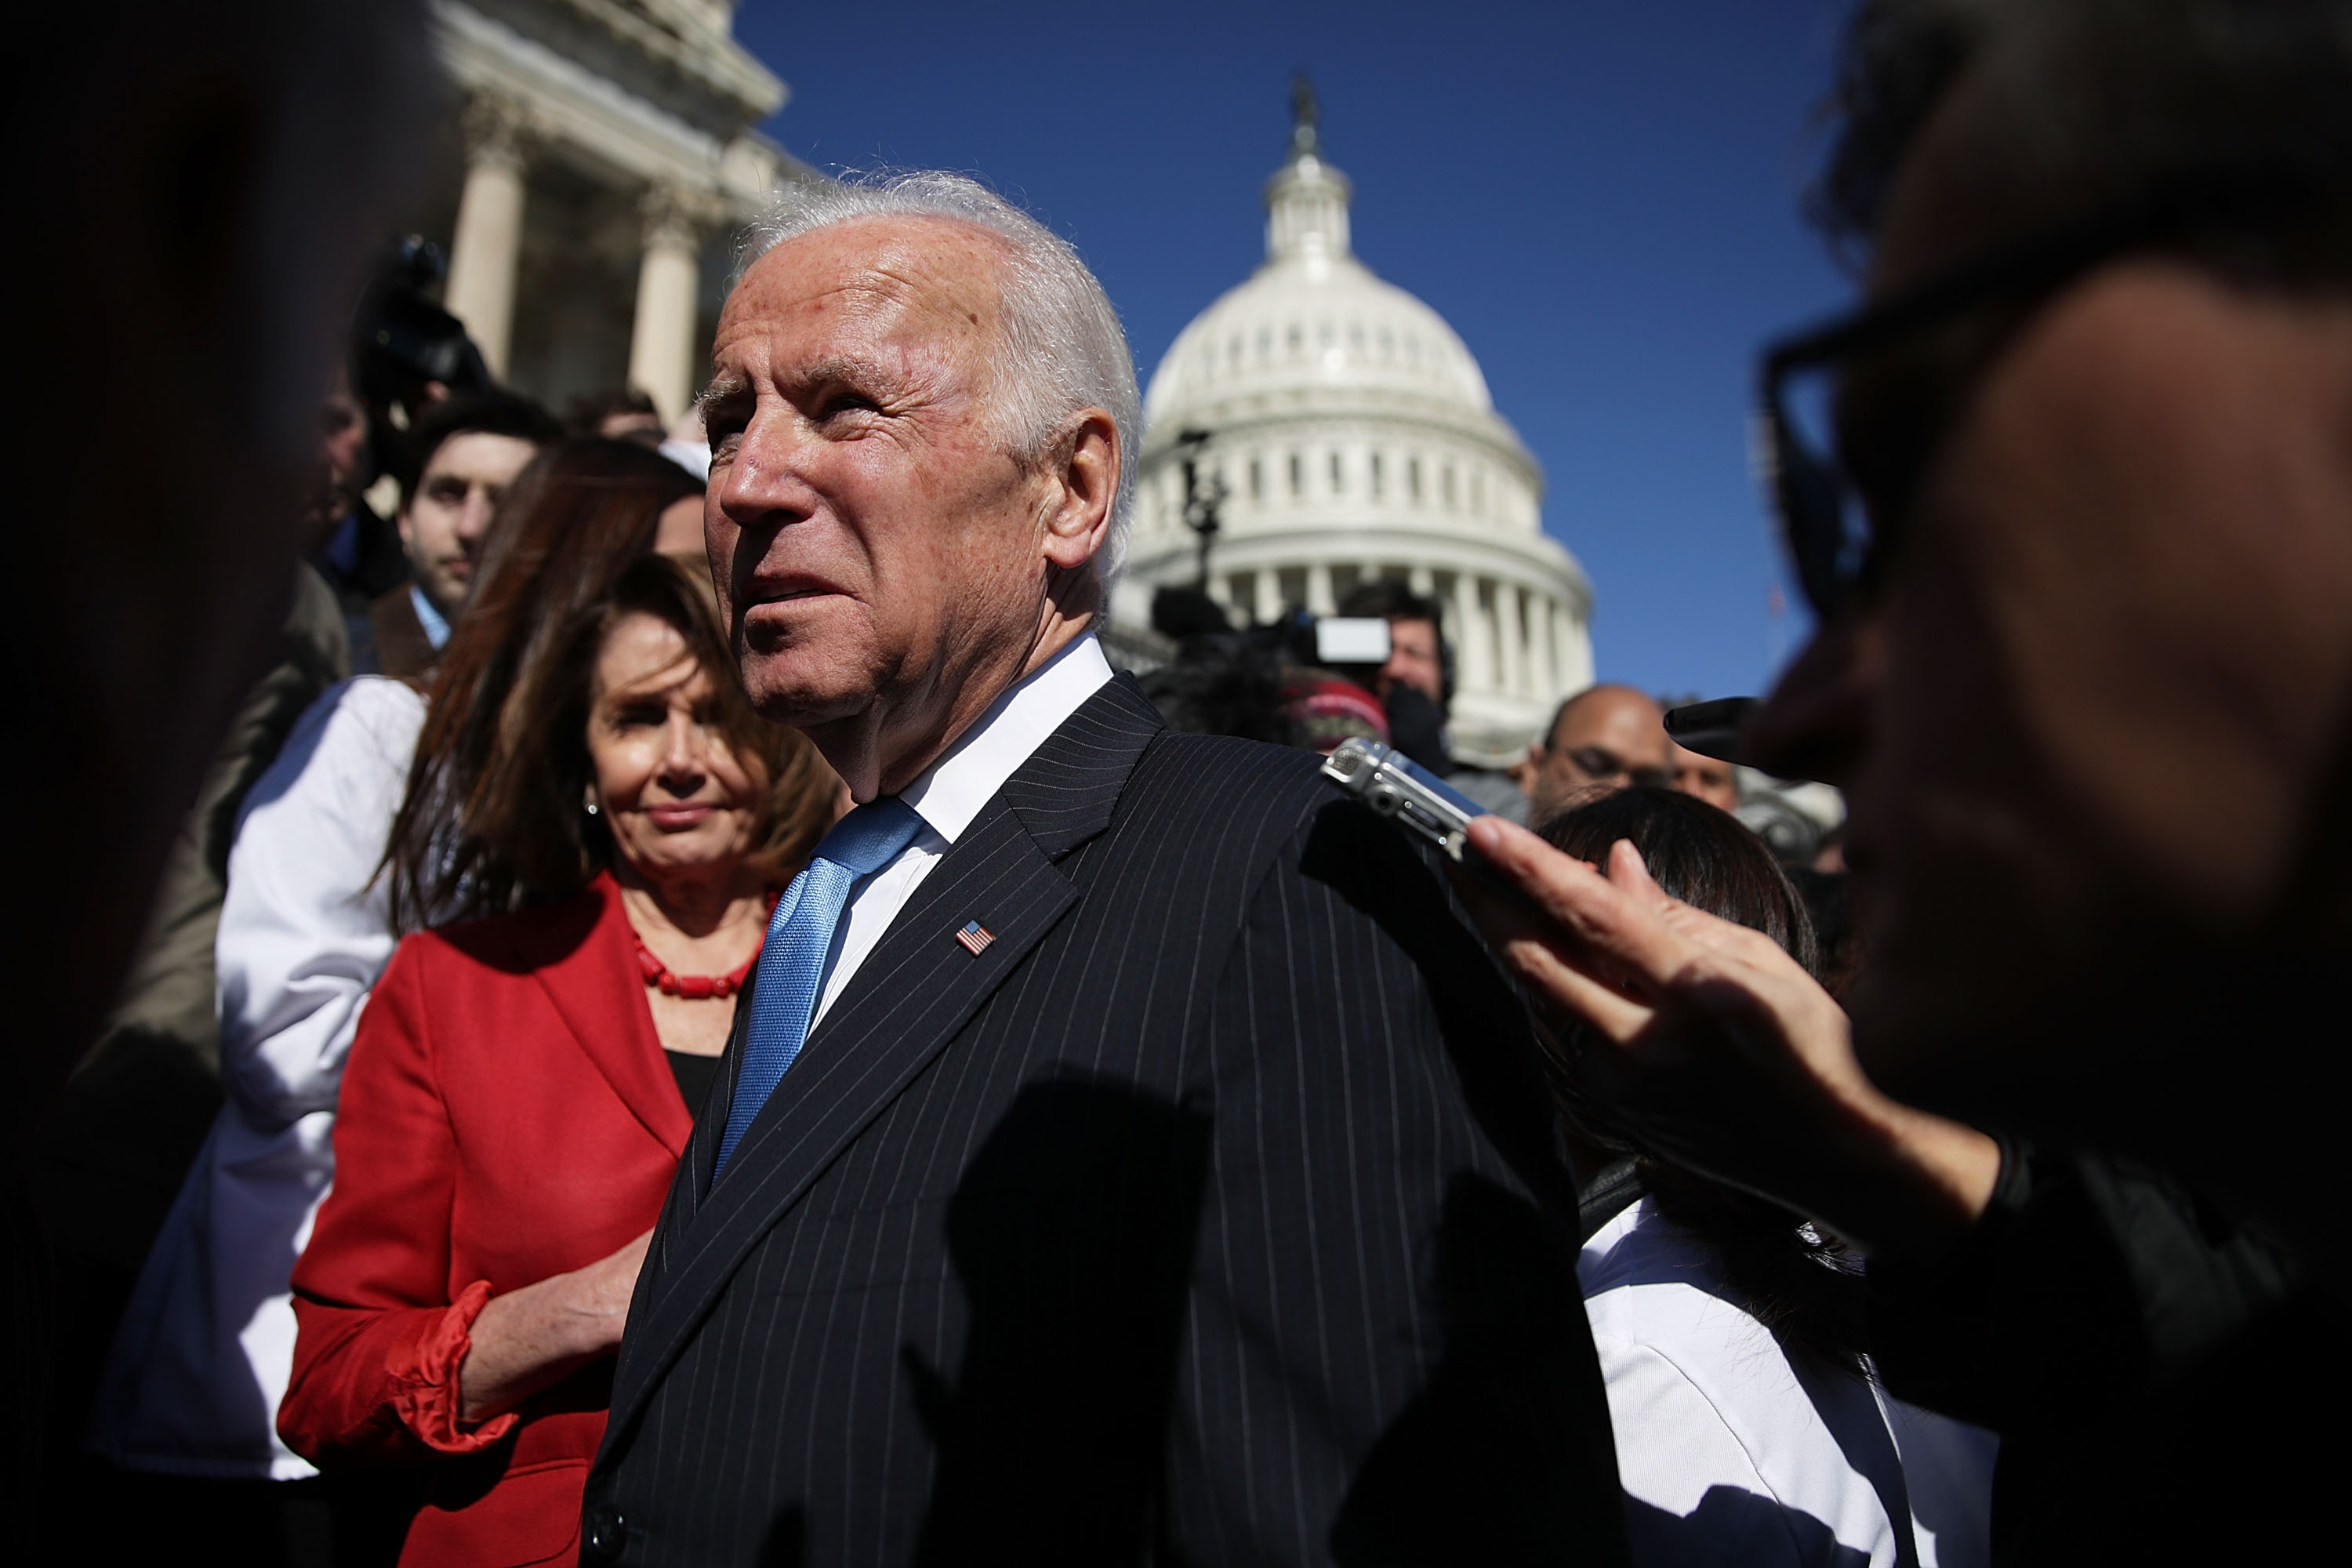 WASHINGTON, DC - MARCH 22: Former U.S. Vice President Joseph Biden speaks to members of the media as House Minority Leader Rep. Nancy Pelosi (D-CA) looks on after an event on health care at the House East Front of the Capitol March 22, 2017 in Washington, DC. House Democrats held the event to mark the seventh anniversary of the Affordable Care Act. (Photo by Alex Wong/Getty Images)